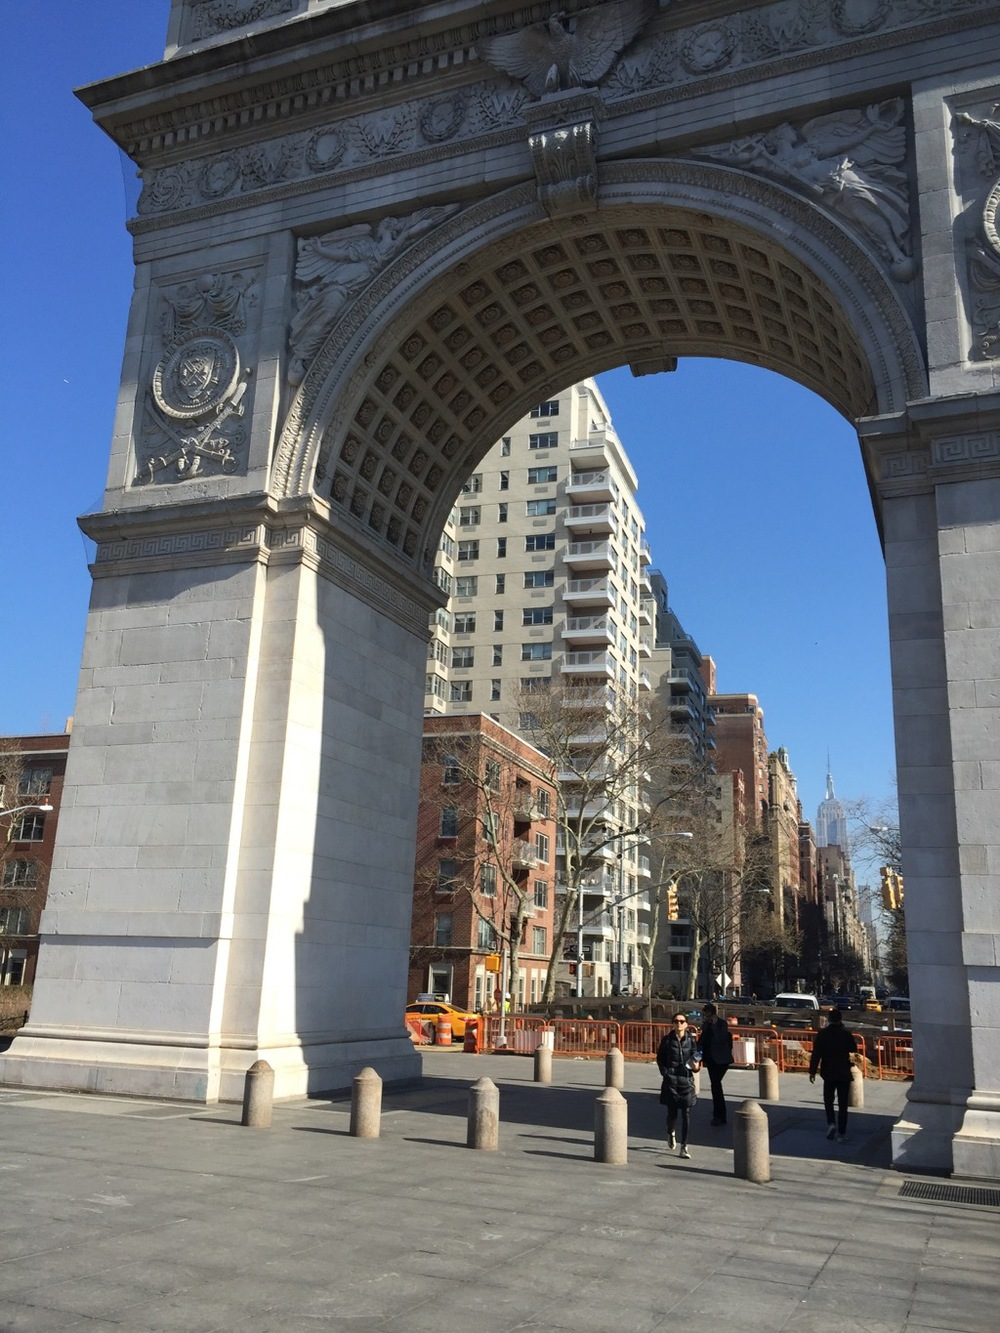 The arch in Washington Square Park.